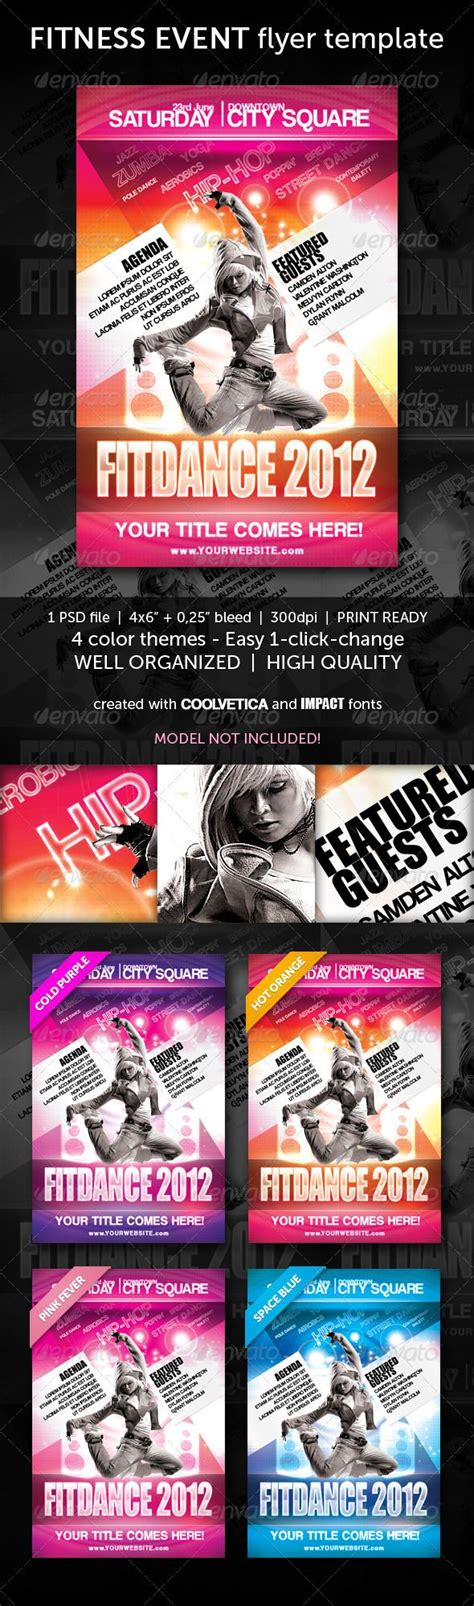 13 Best Images About Zumba Flyer On Pinterest Studios Flyer Template And Business Card Templates Kicks Flyer Template 2